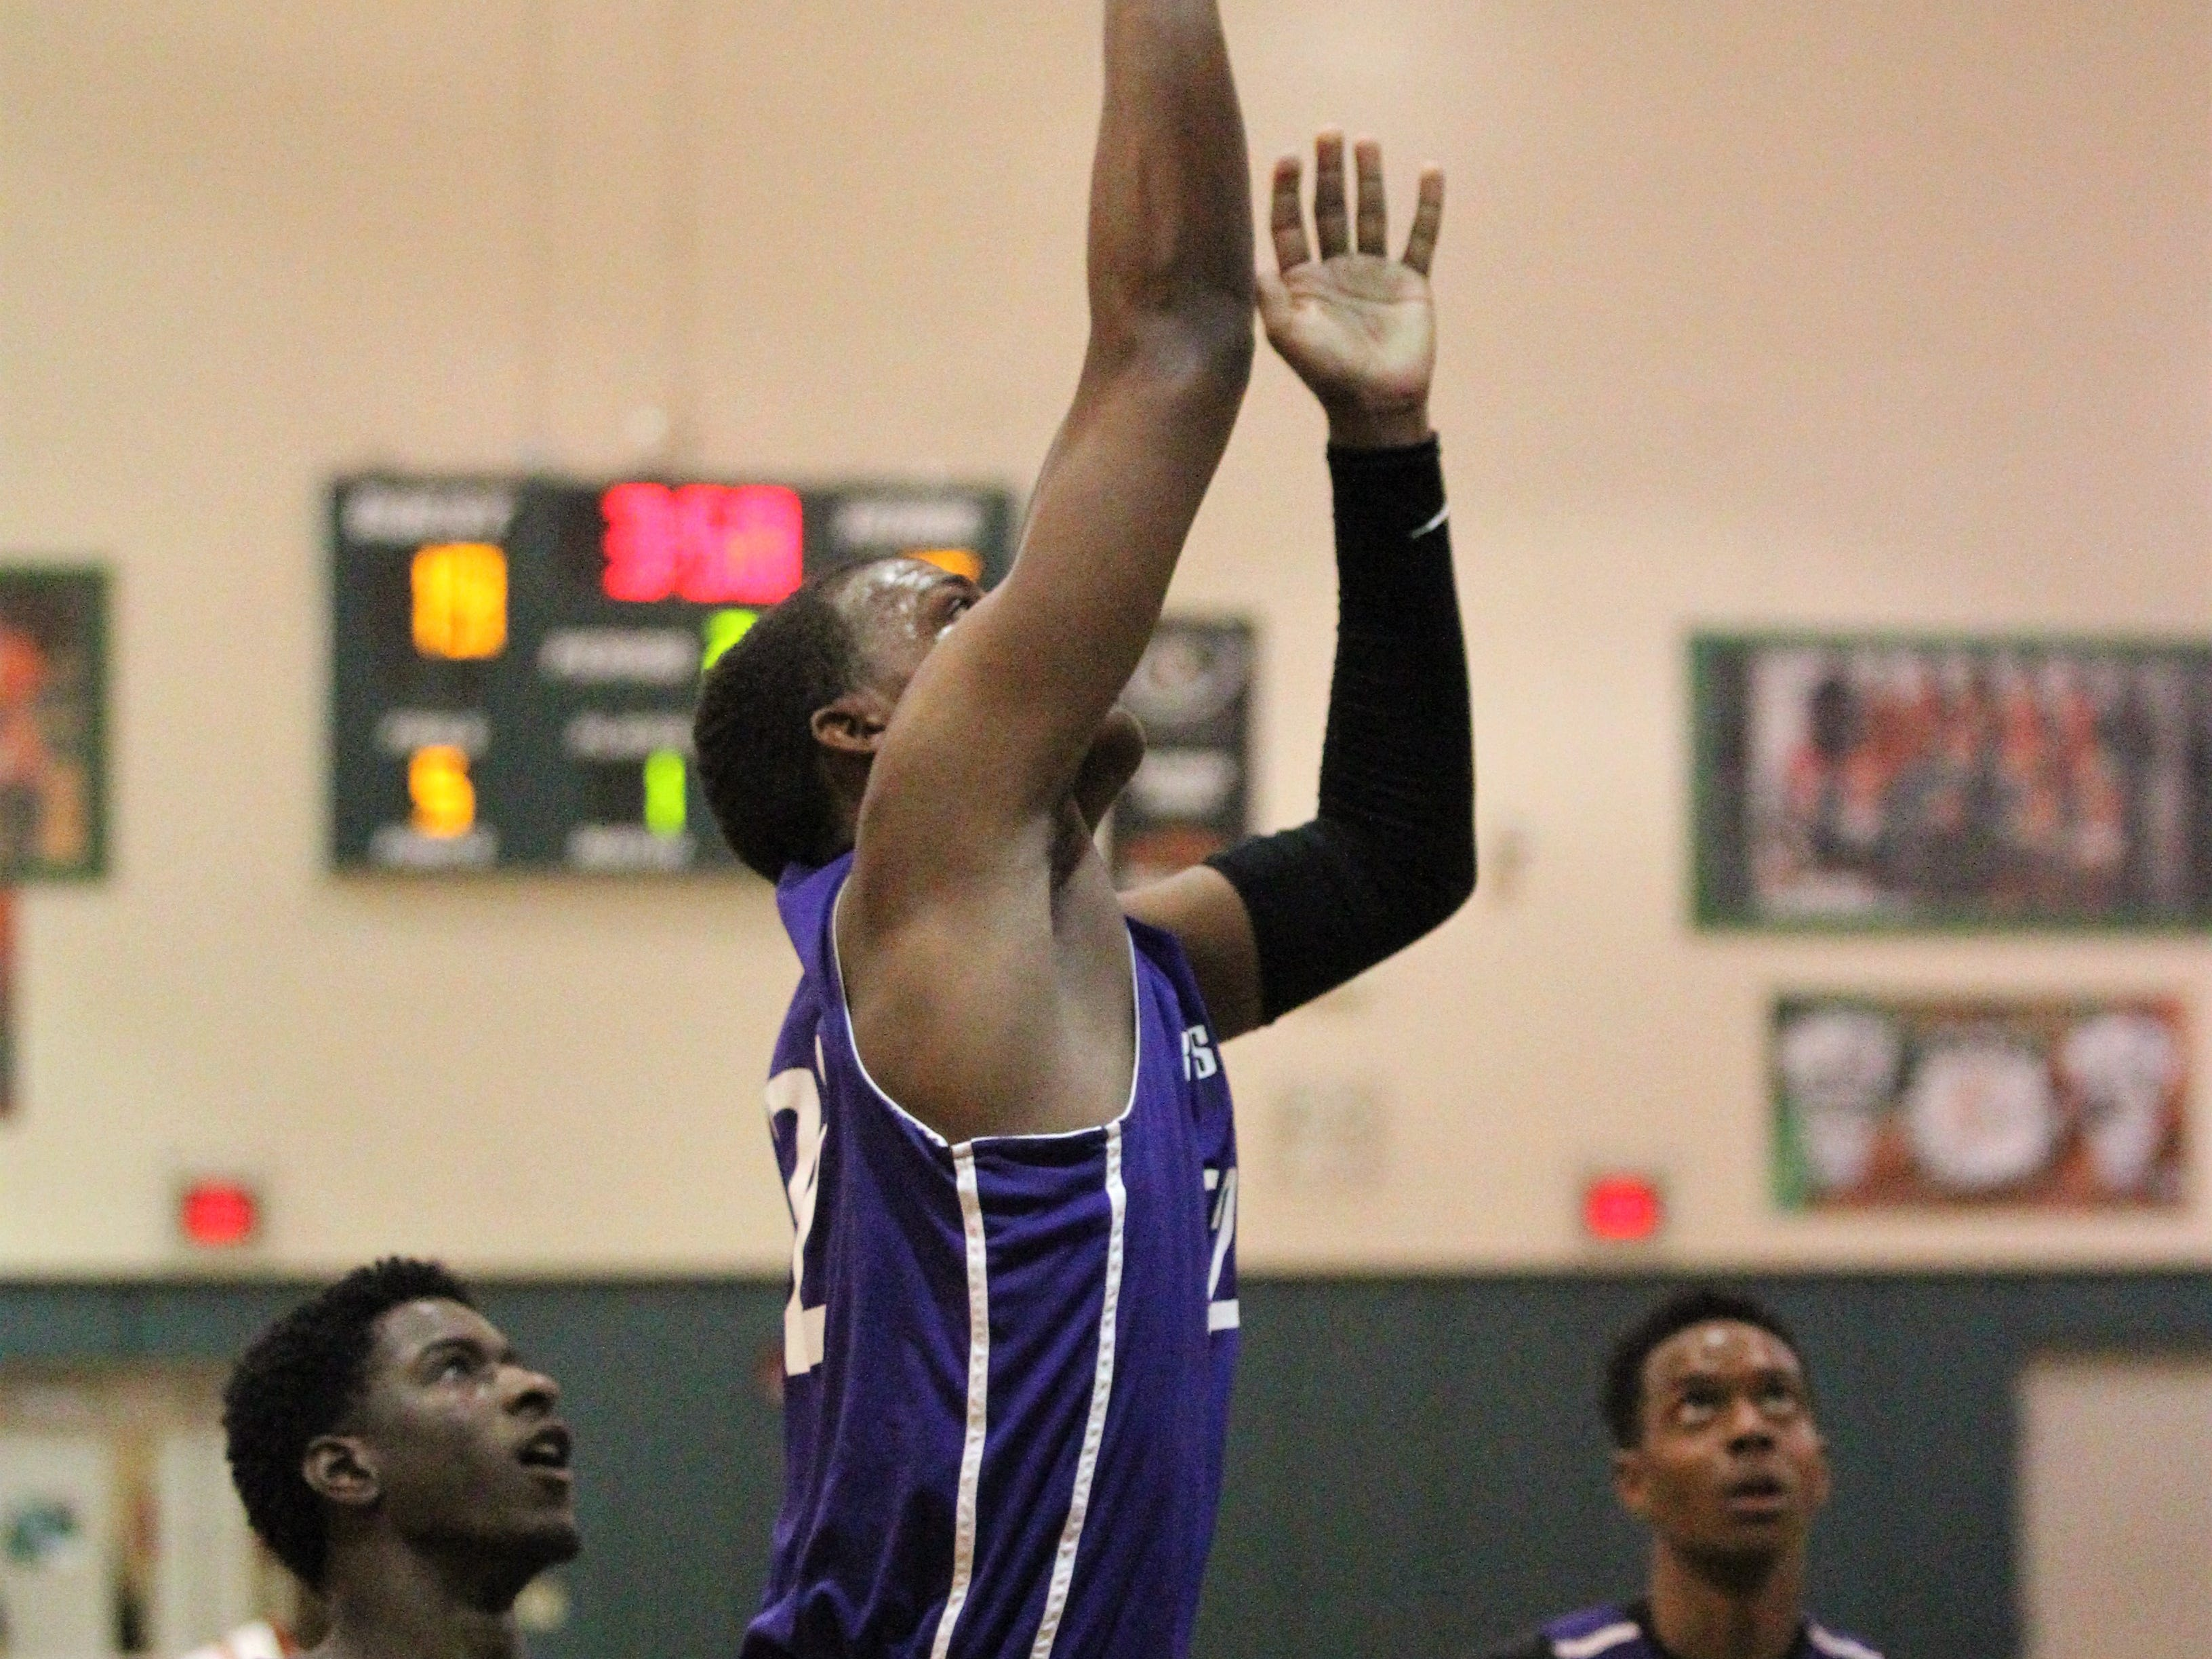 Dedric Streeter goes up for a layup as Crossroad Academy's boys basketball team plays at FAMU DRS on Jan. 7, 2019.